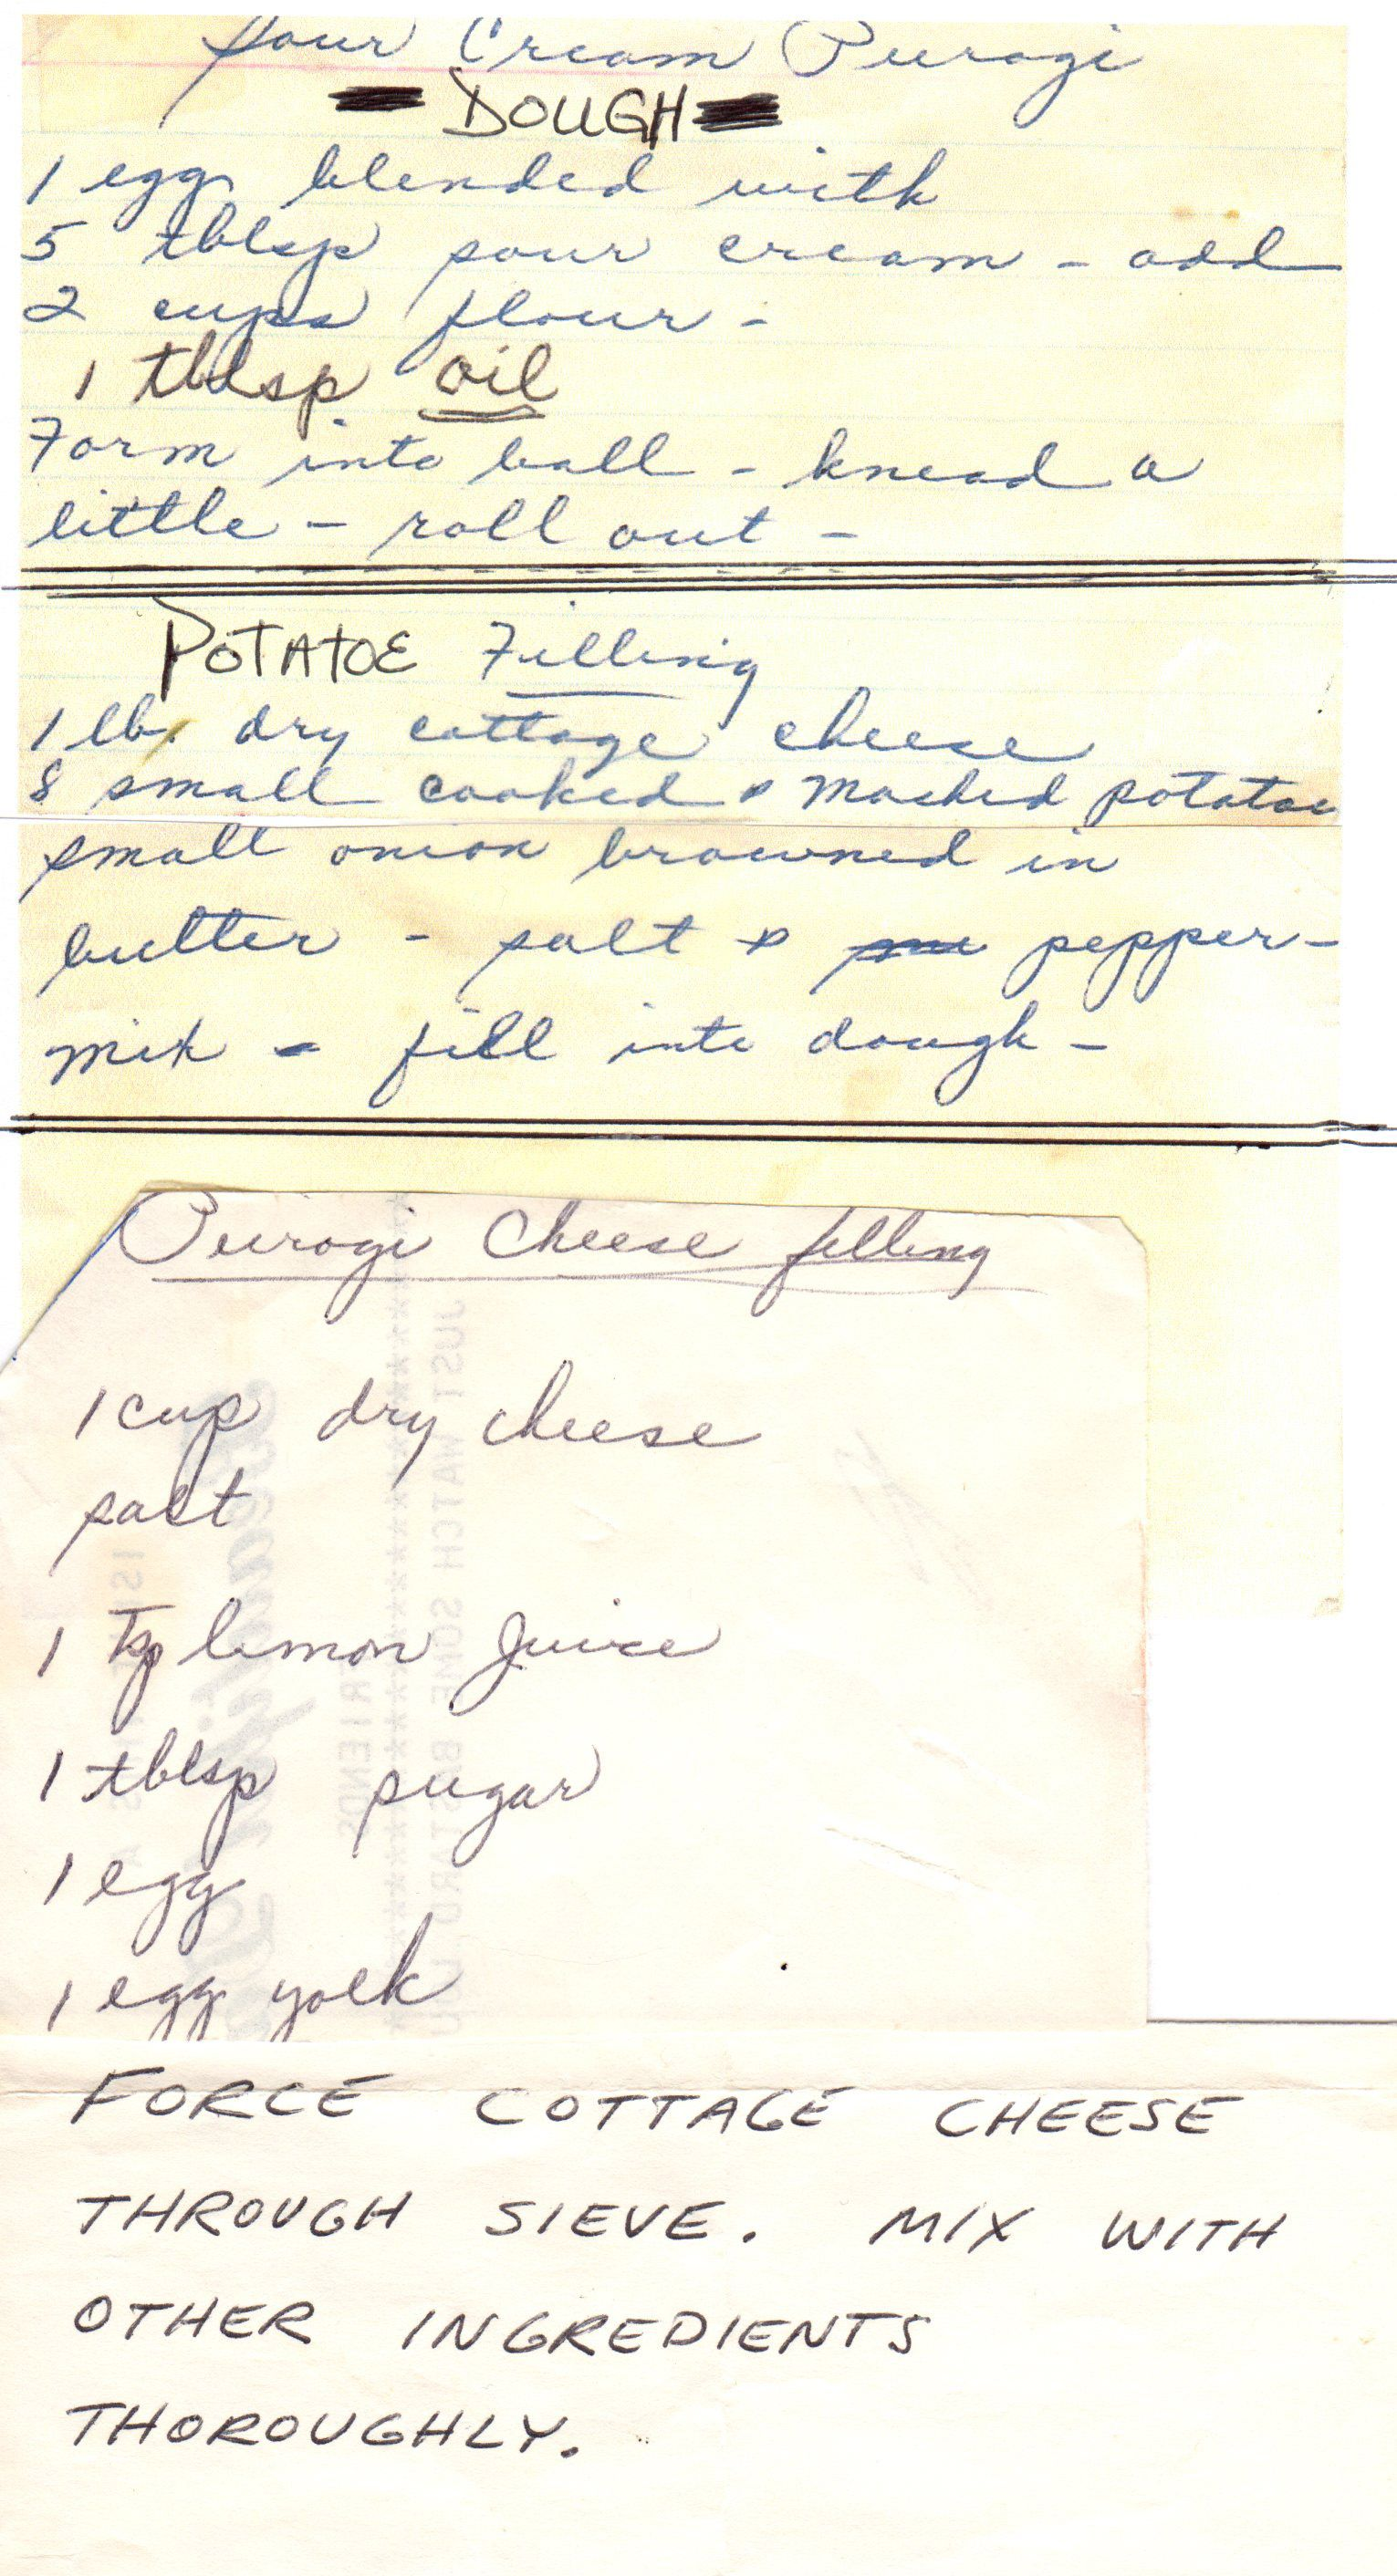 Nana's Pierogi Recipe. I had to pin this recipe just because it's handwritten and it sounds authentic.....so sweet:)